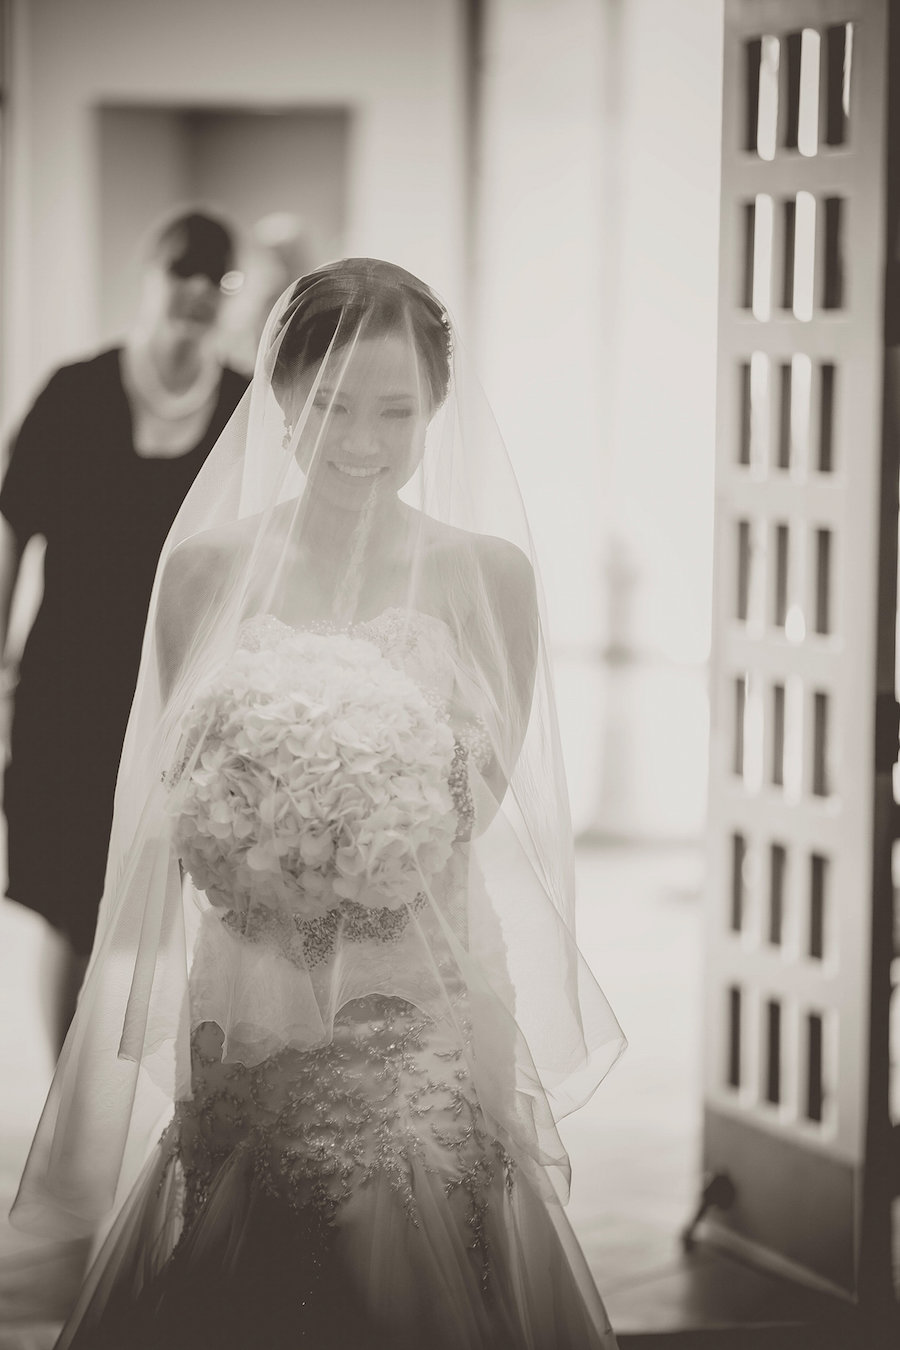 Portrait of Bride Walking Down Aisle Wedding Ceremony | Photo by Tampa Bay Wedding Photographer Kristen Marie Photography